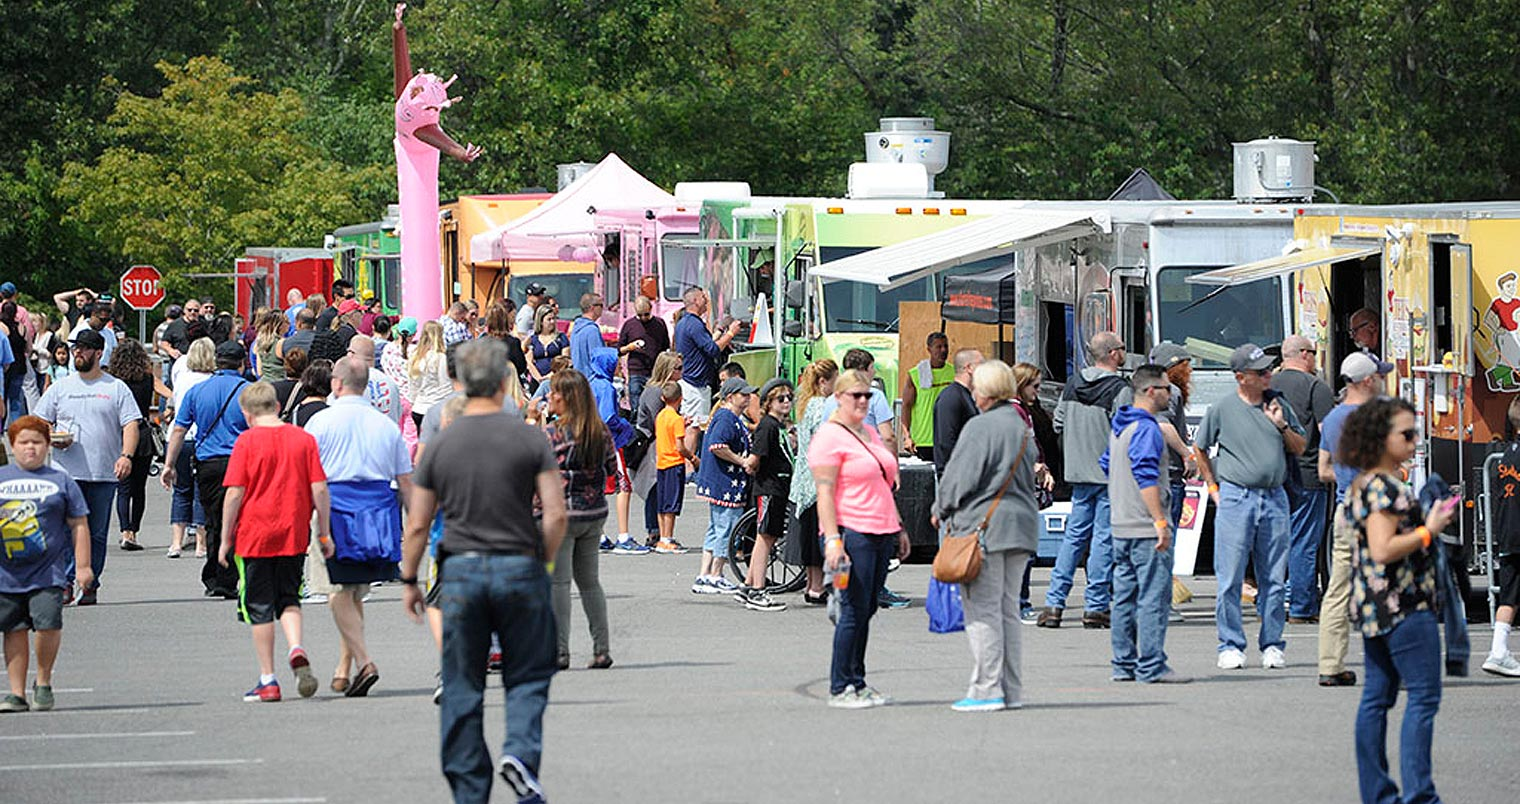 3rd Annual New England Food Truck Festival At Mohegan Sun Chilled